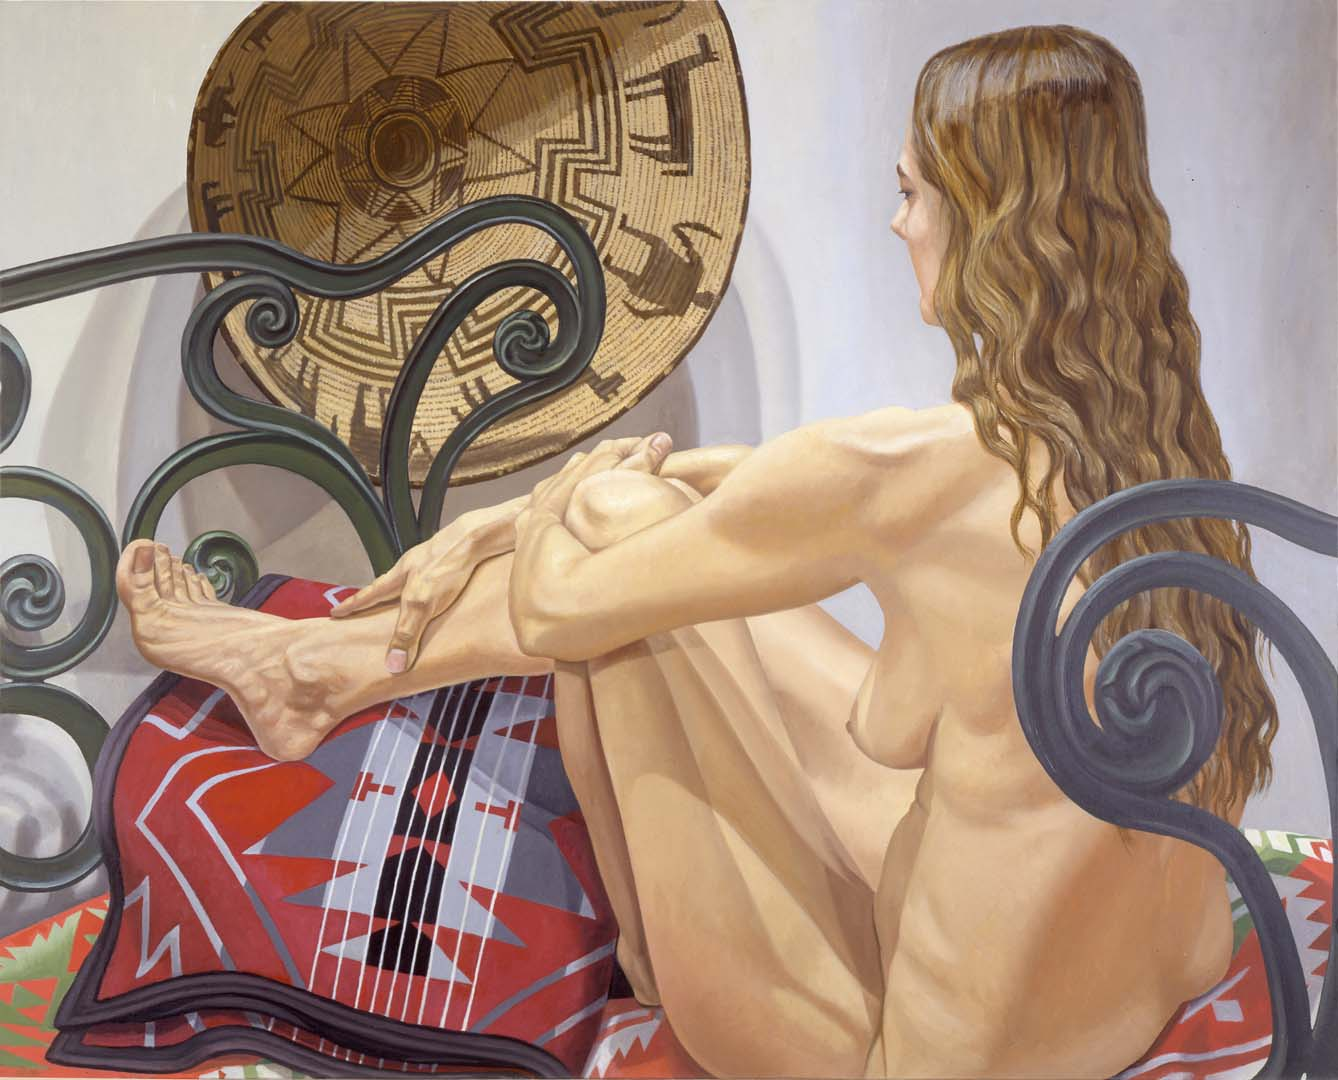 1996 Nude with Navajo Basket and Cast Iron Bed Oil on Canvas 48 x 60